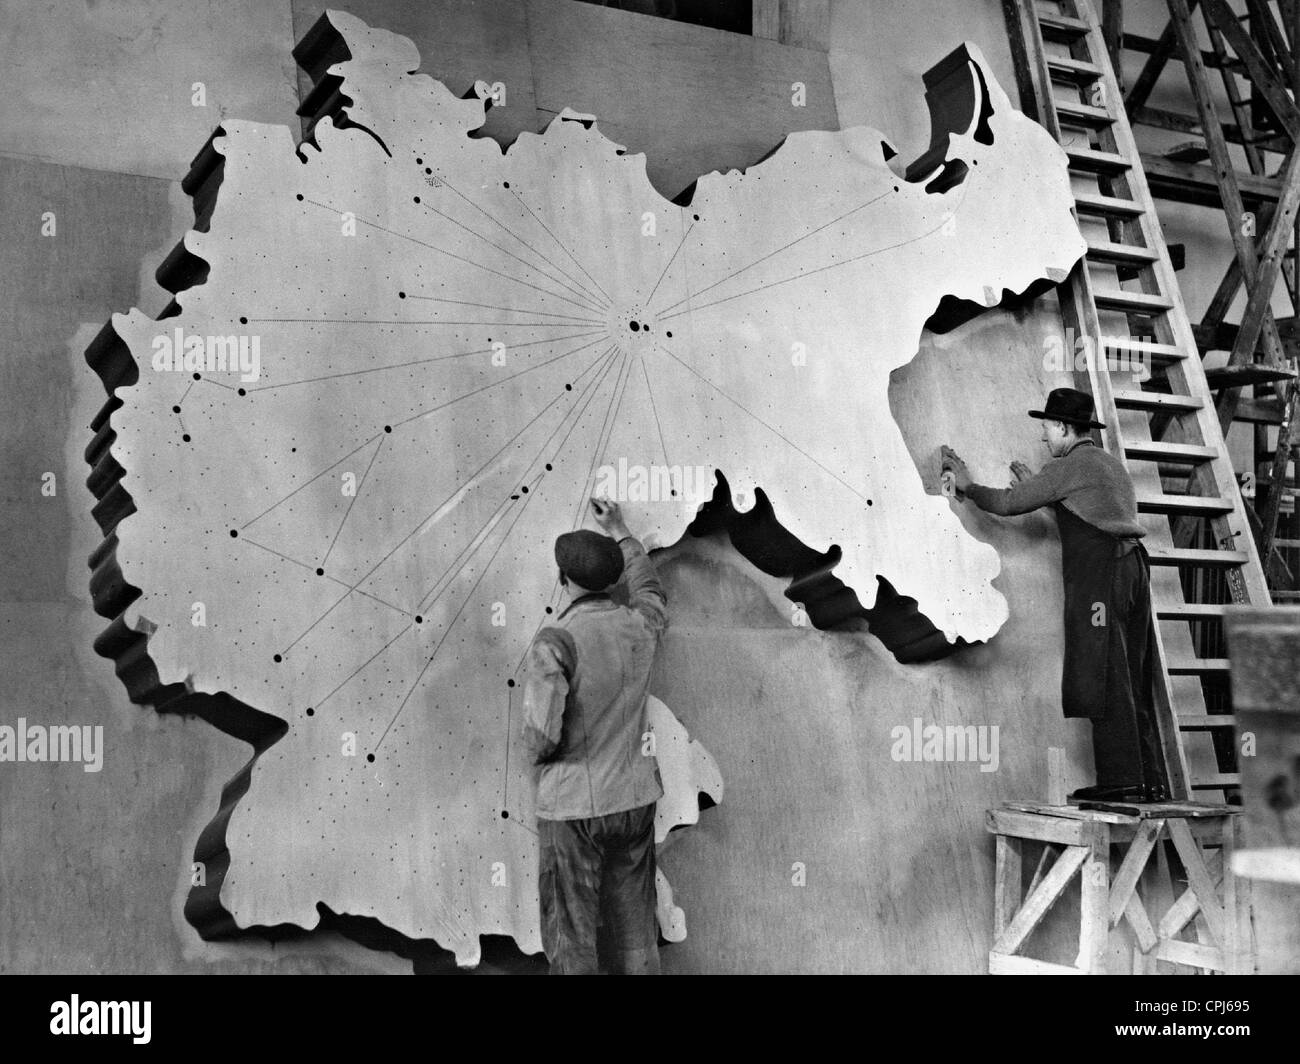 Preparations for the exhibition 'The Wonder of Life', 1935 - Stock Image